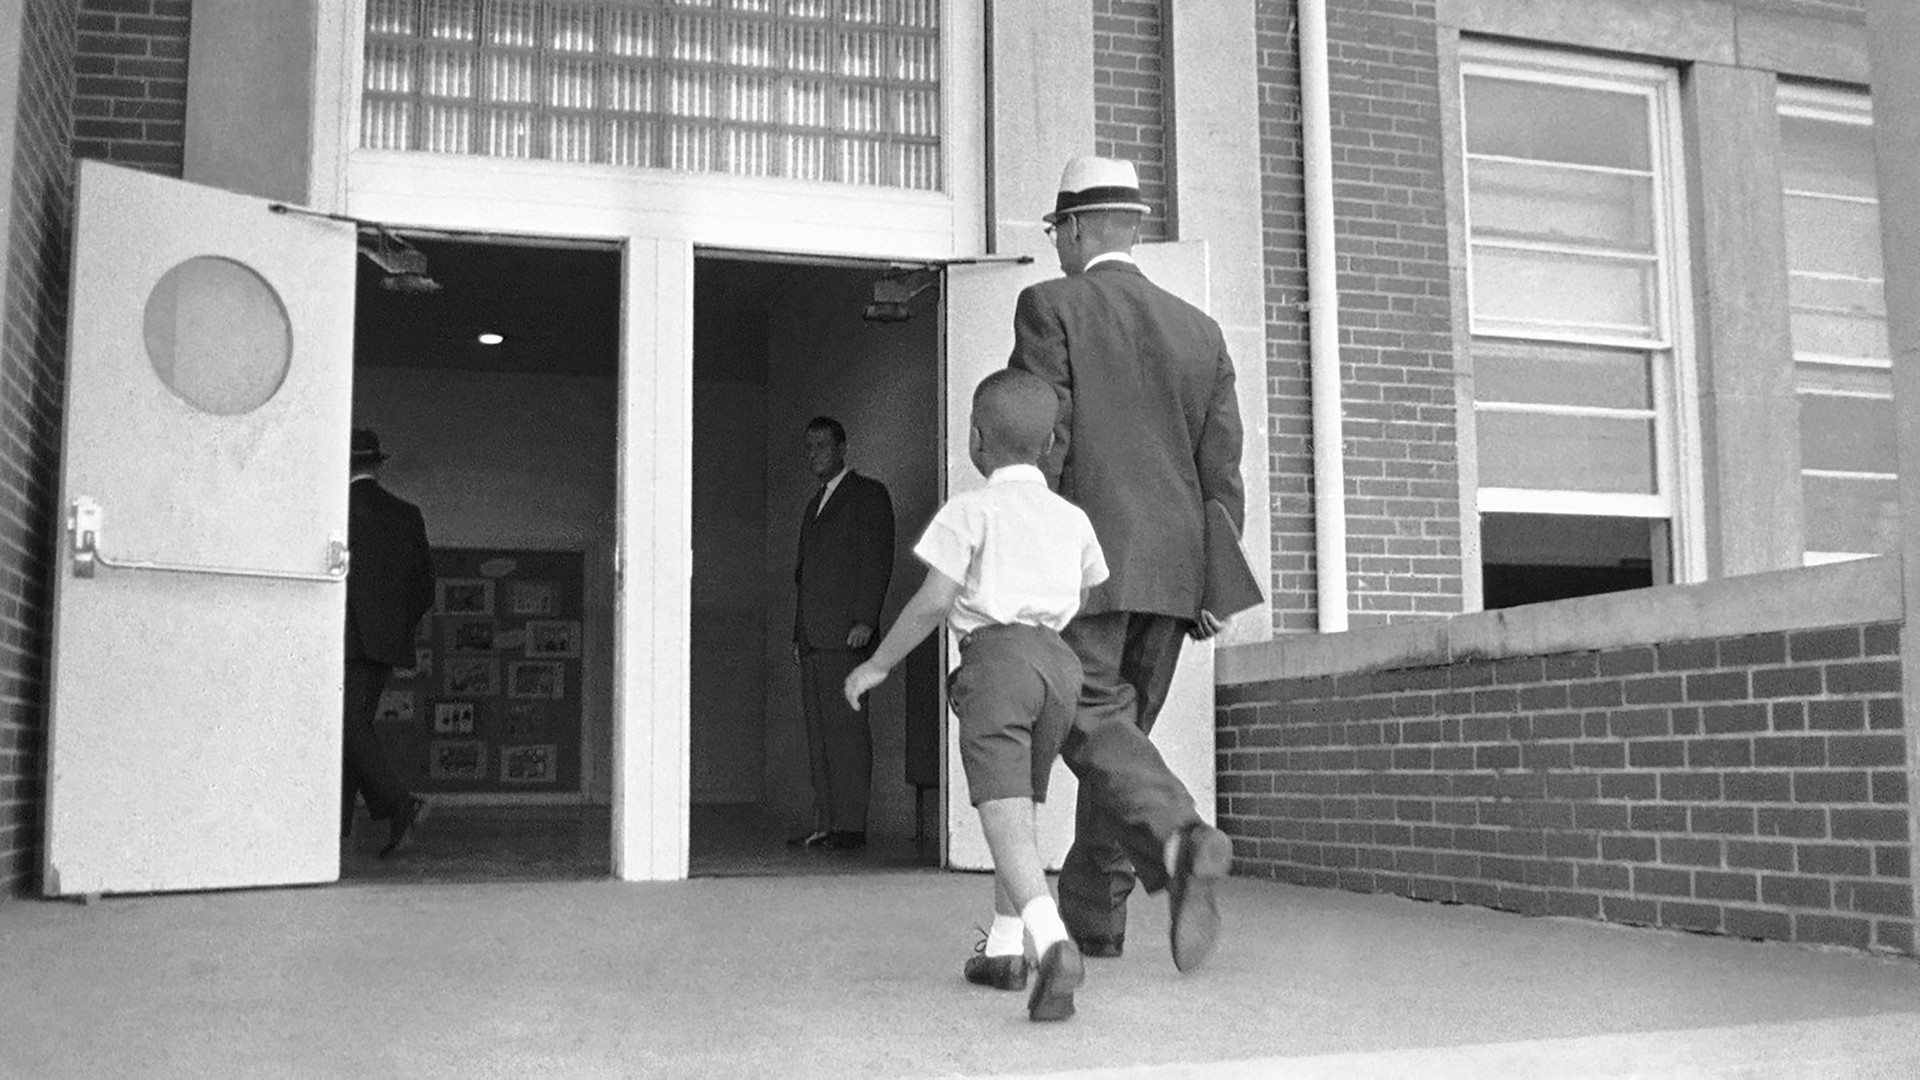 Sonnie Hereford and his dad walked into the front doors of Fifth Avenue School on September 3, 1963, when Sonnie was 6.